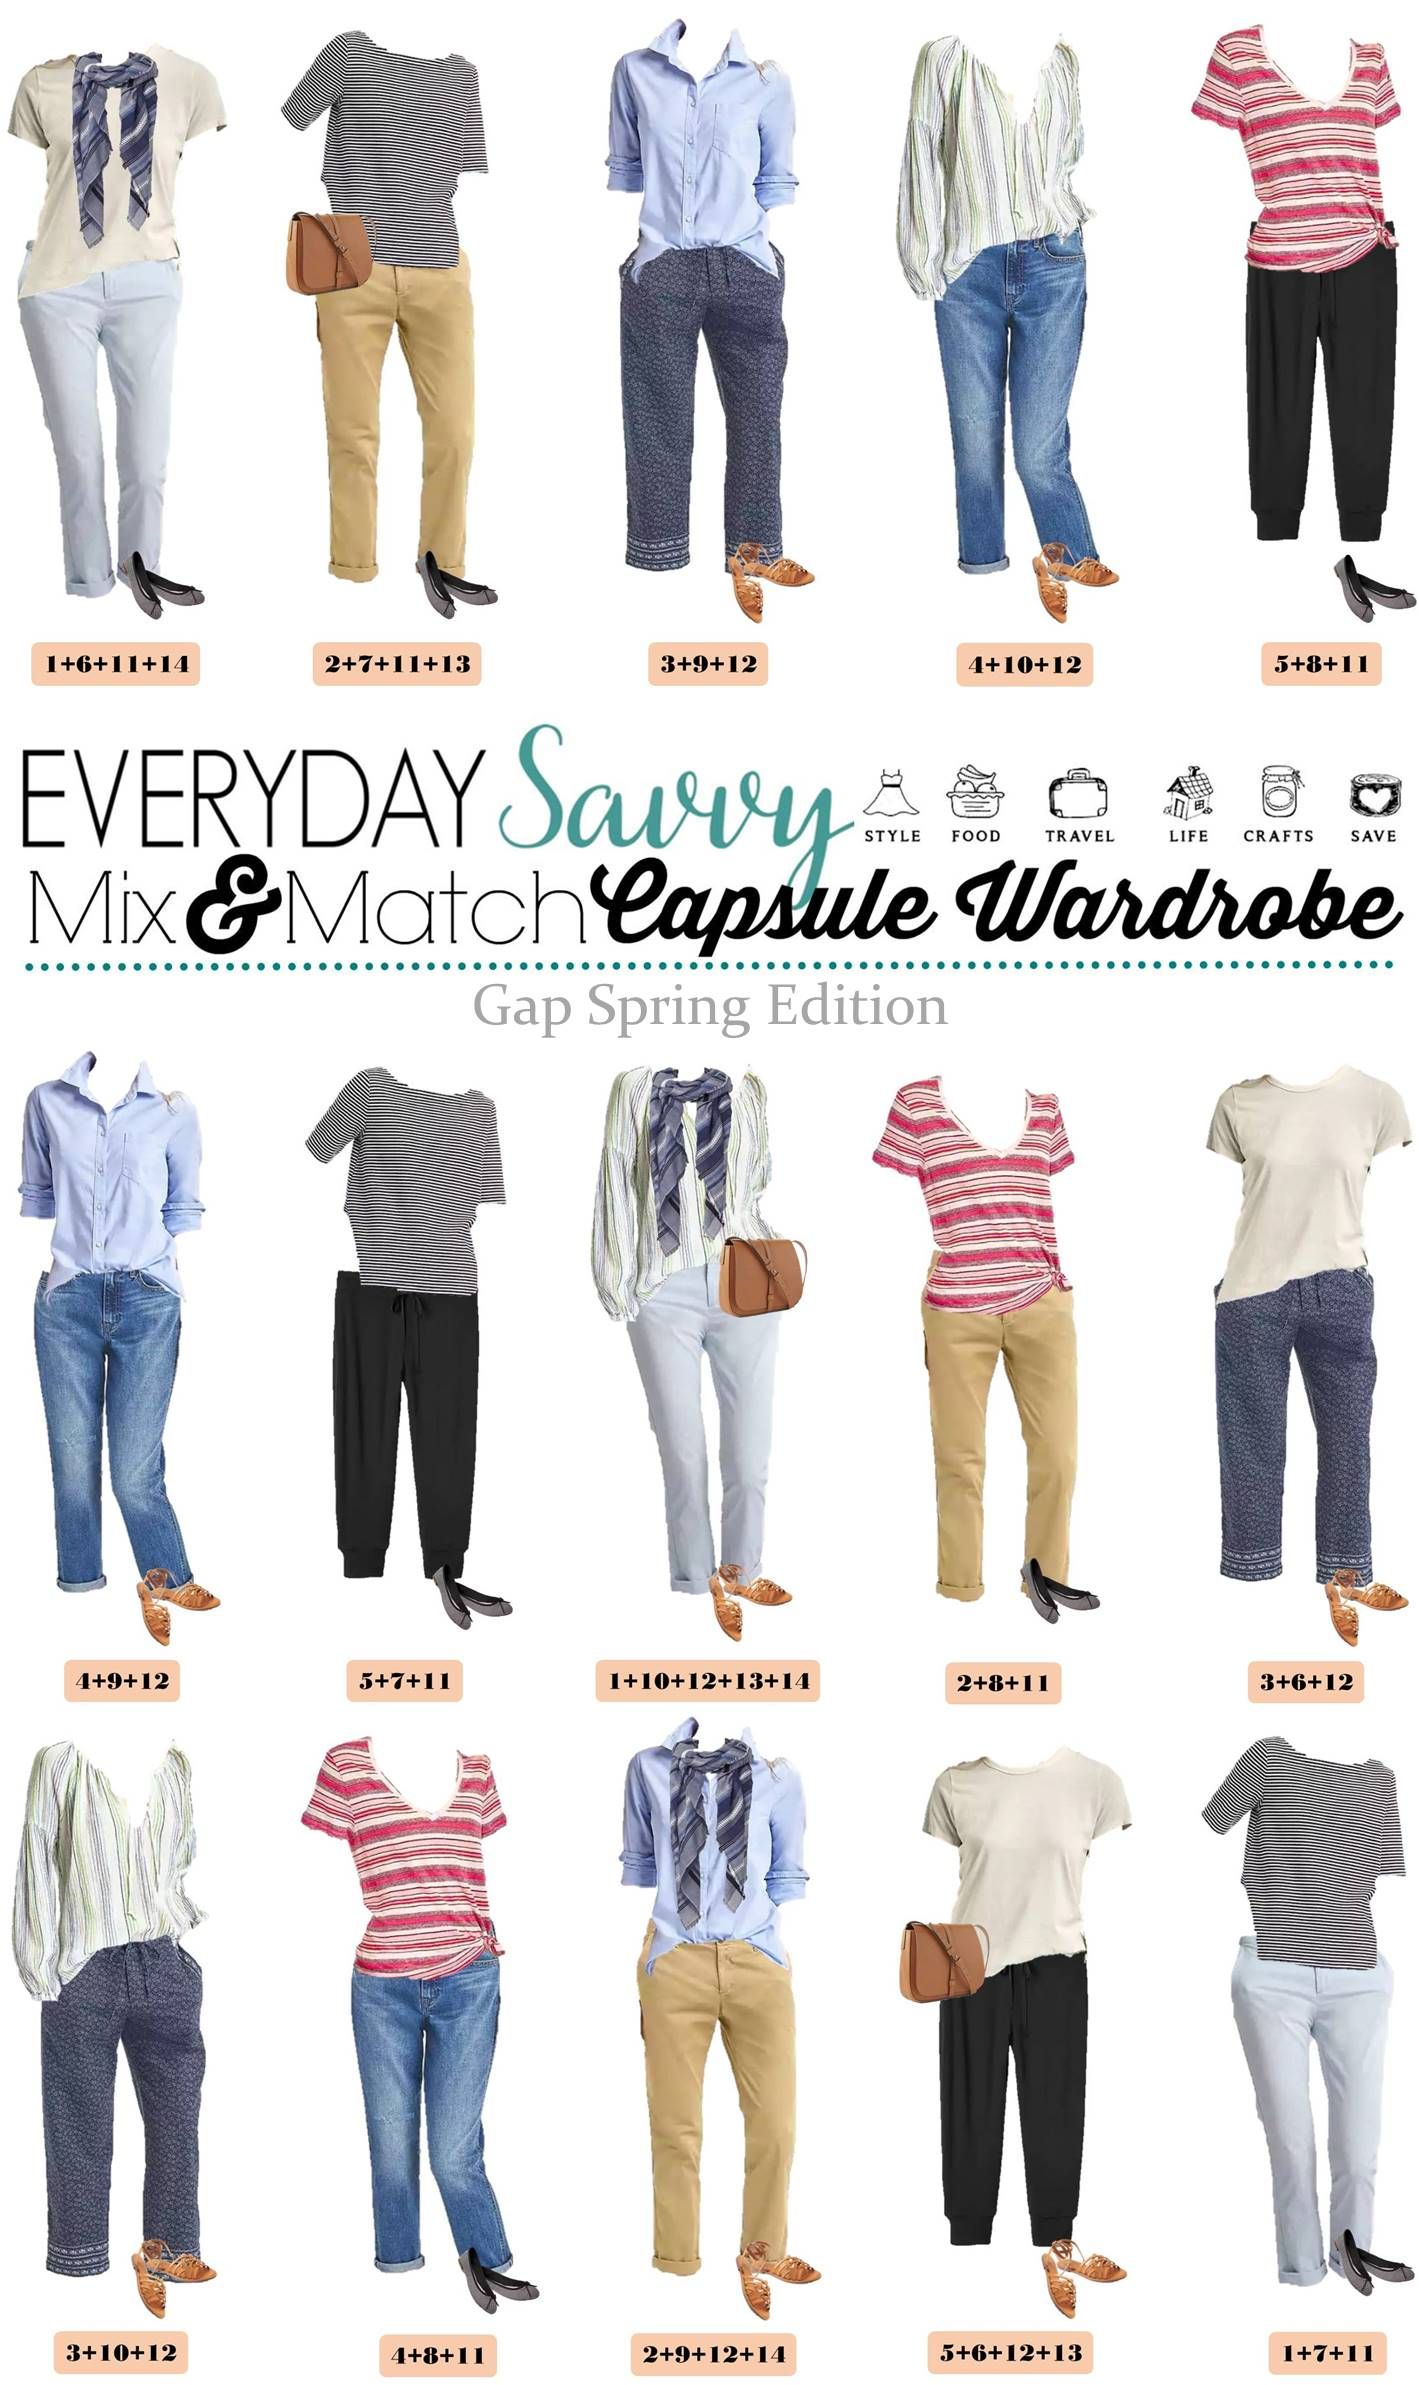 Cute Spring Outfits Capsule Wardrobe Great For Everyday